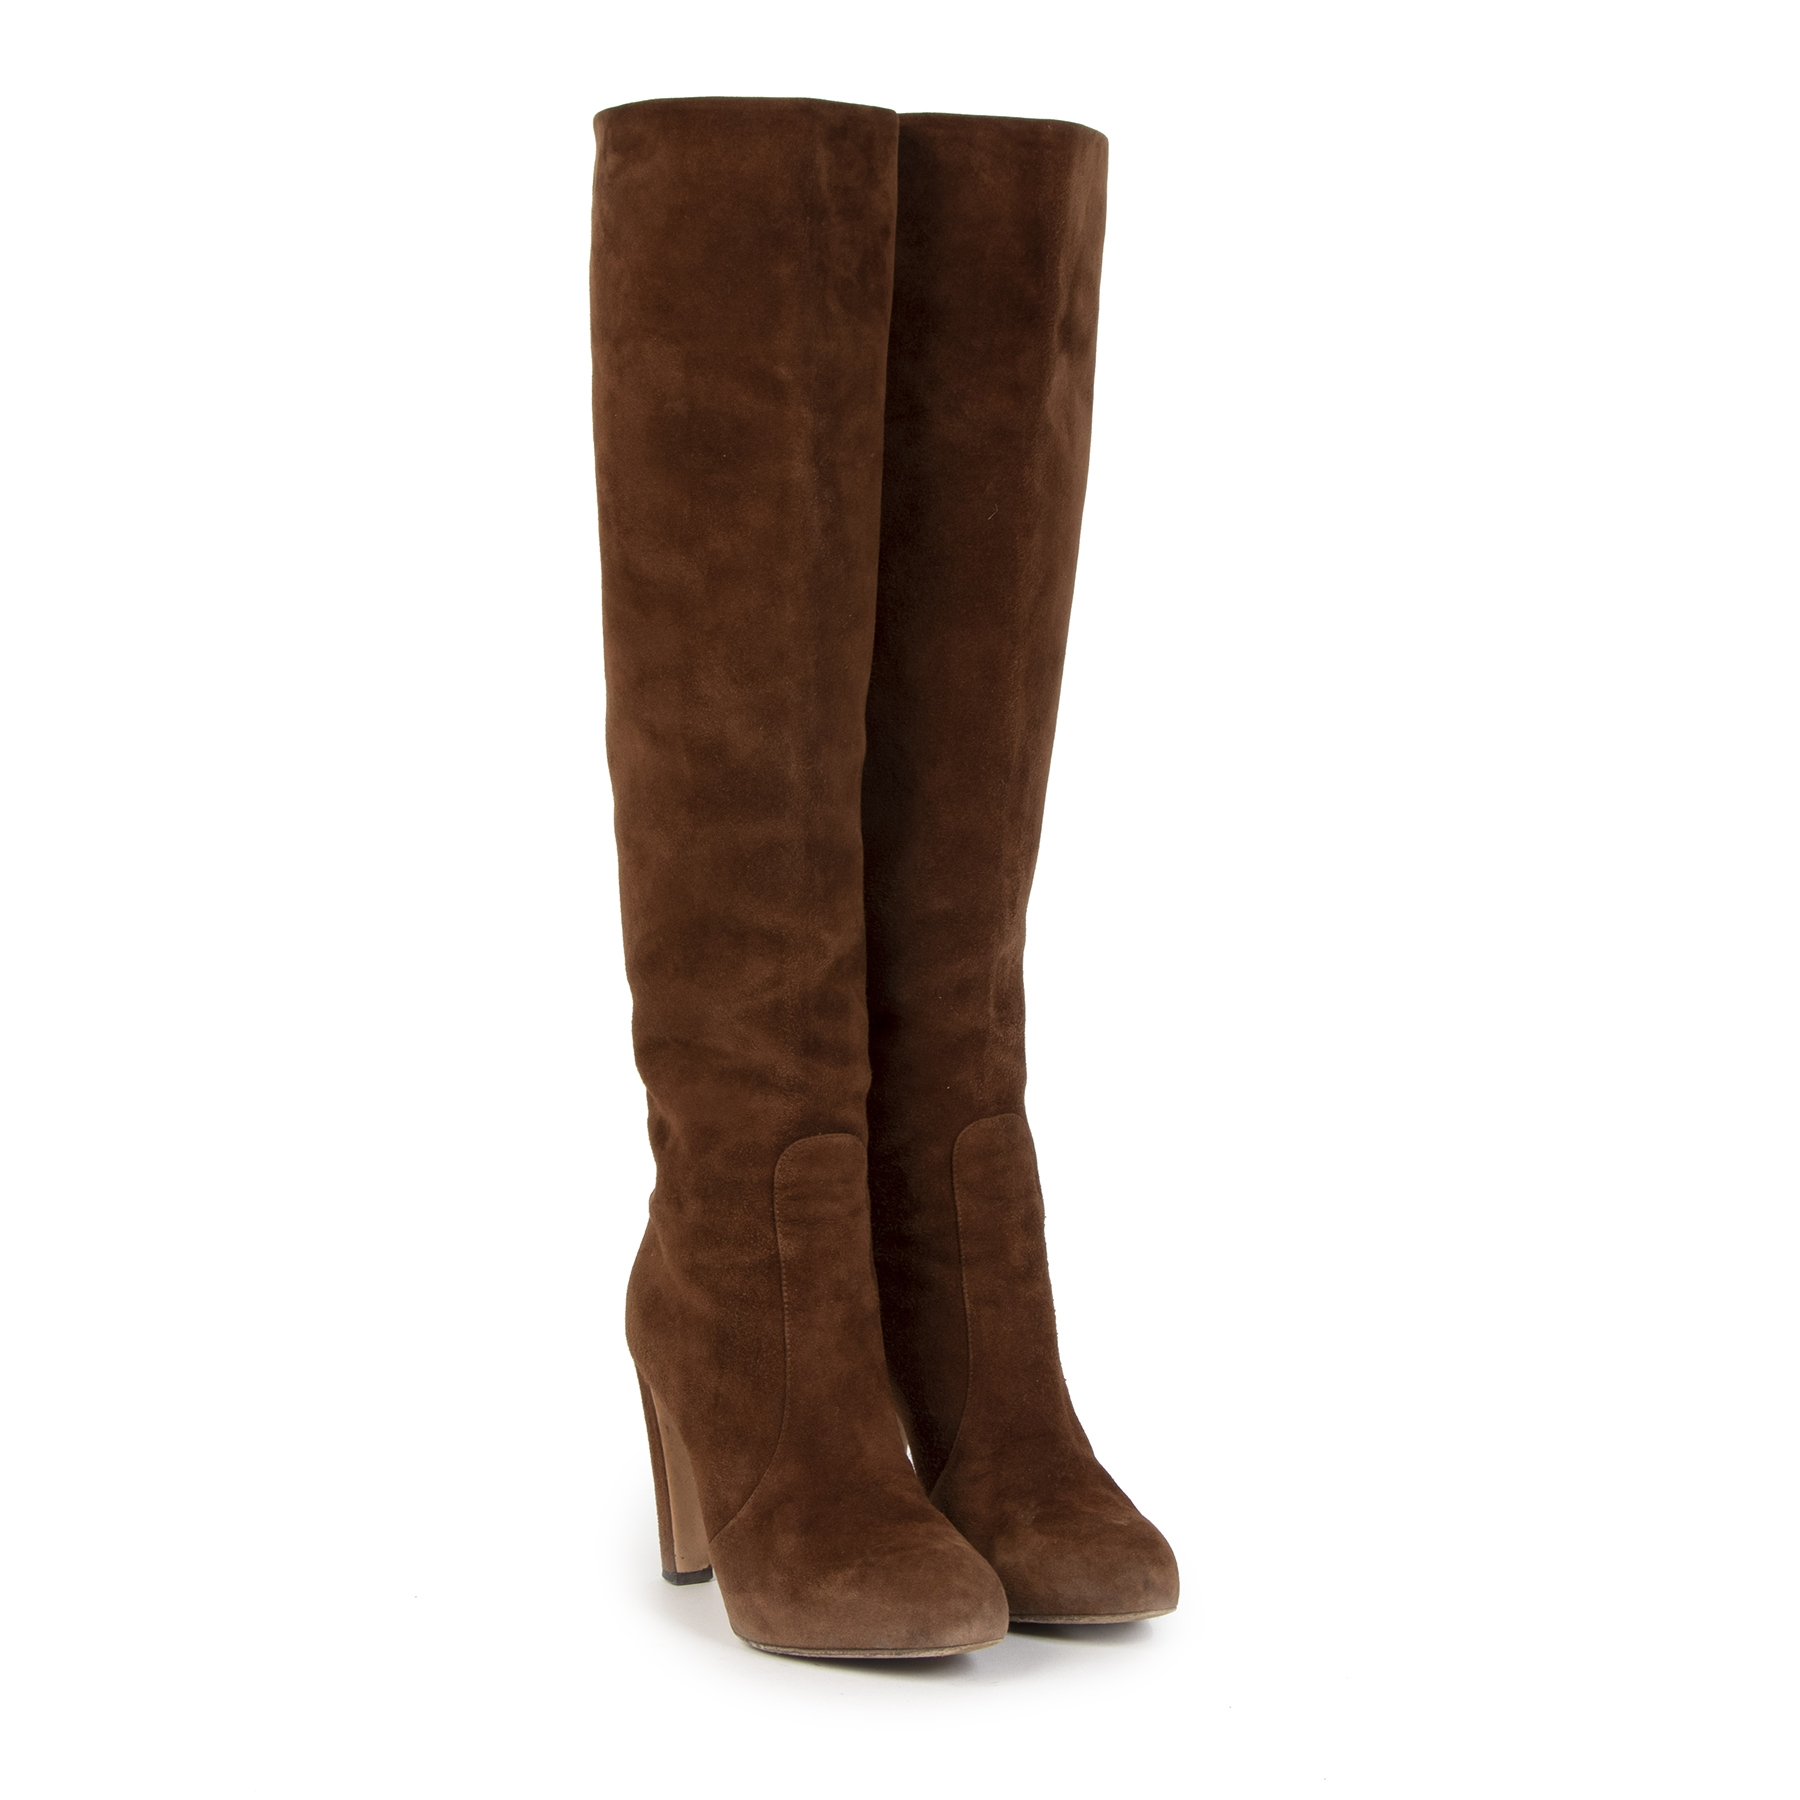 Authentic second-hand vintage Gianvito Rossi Brown Suede Knee Boots - size 38 buy online webshop LabelLOV